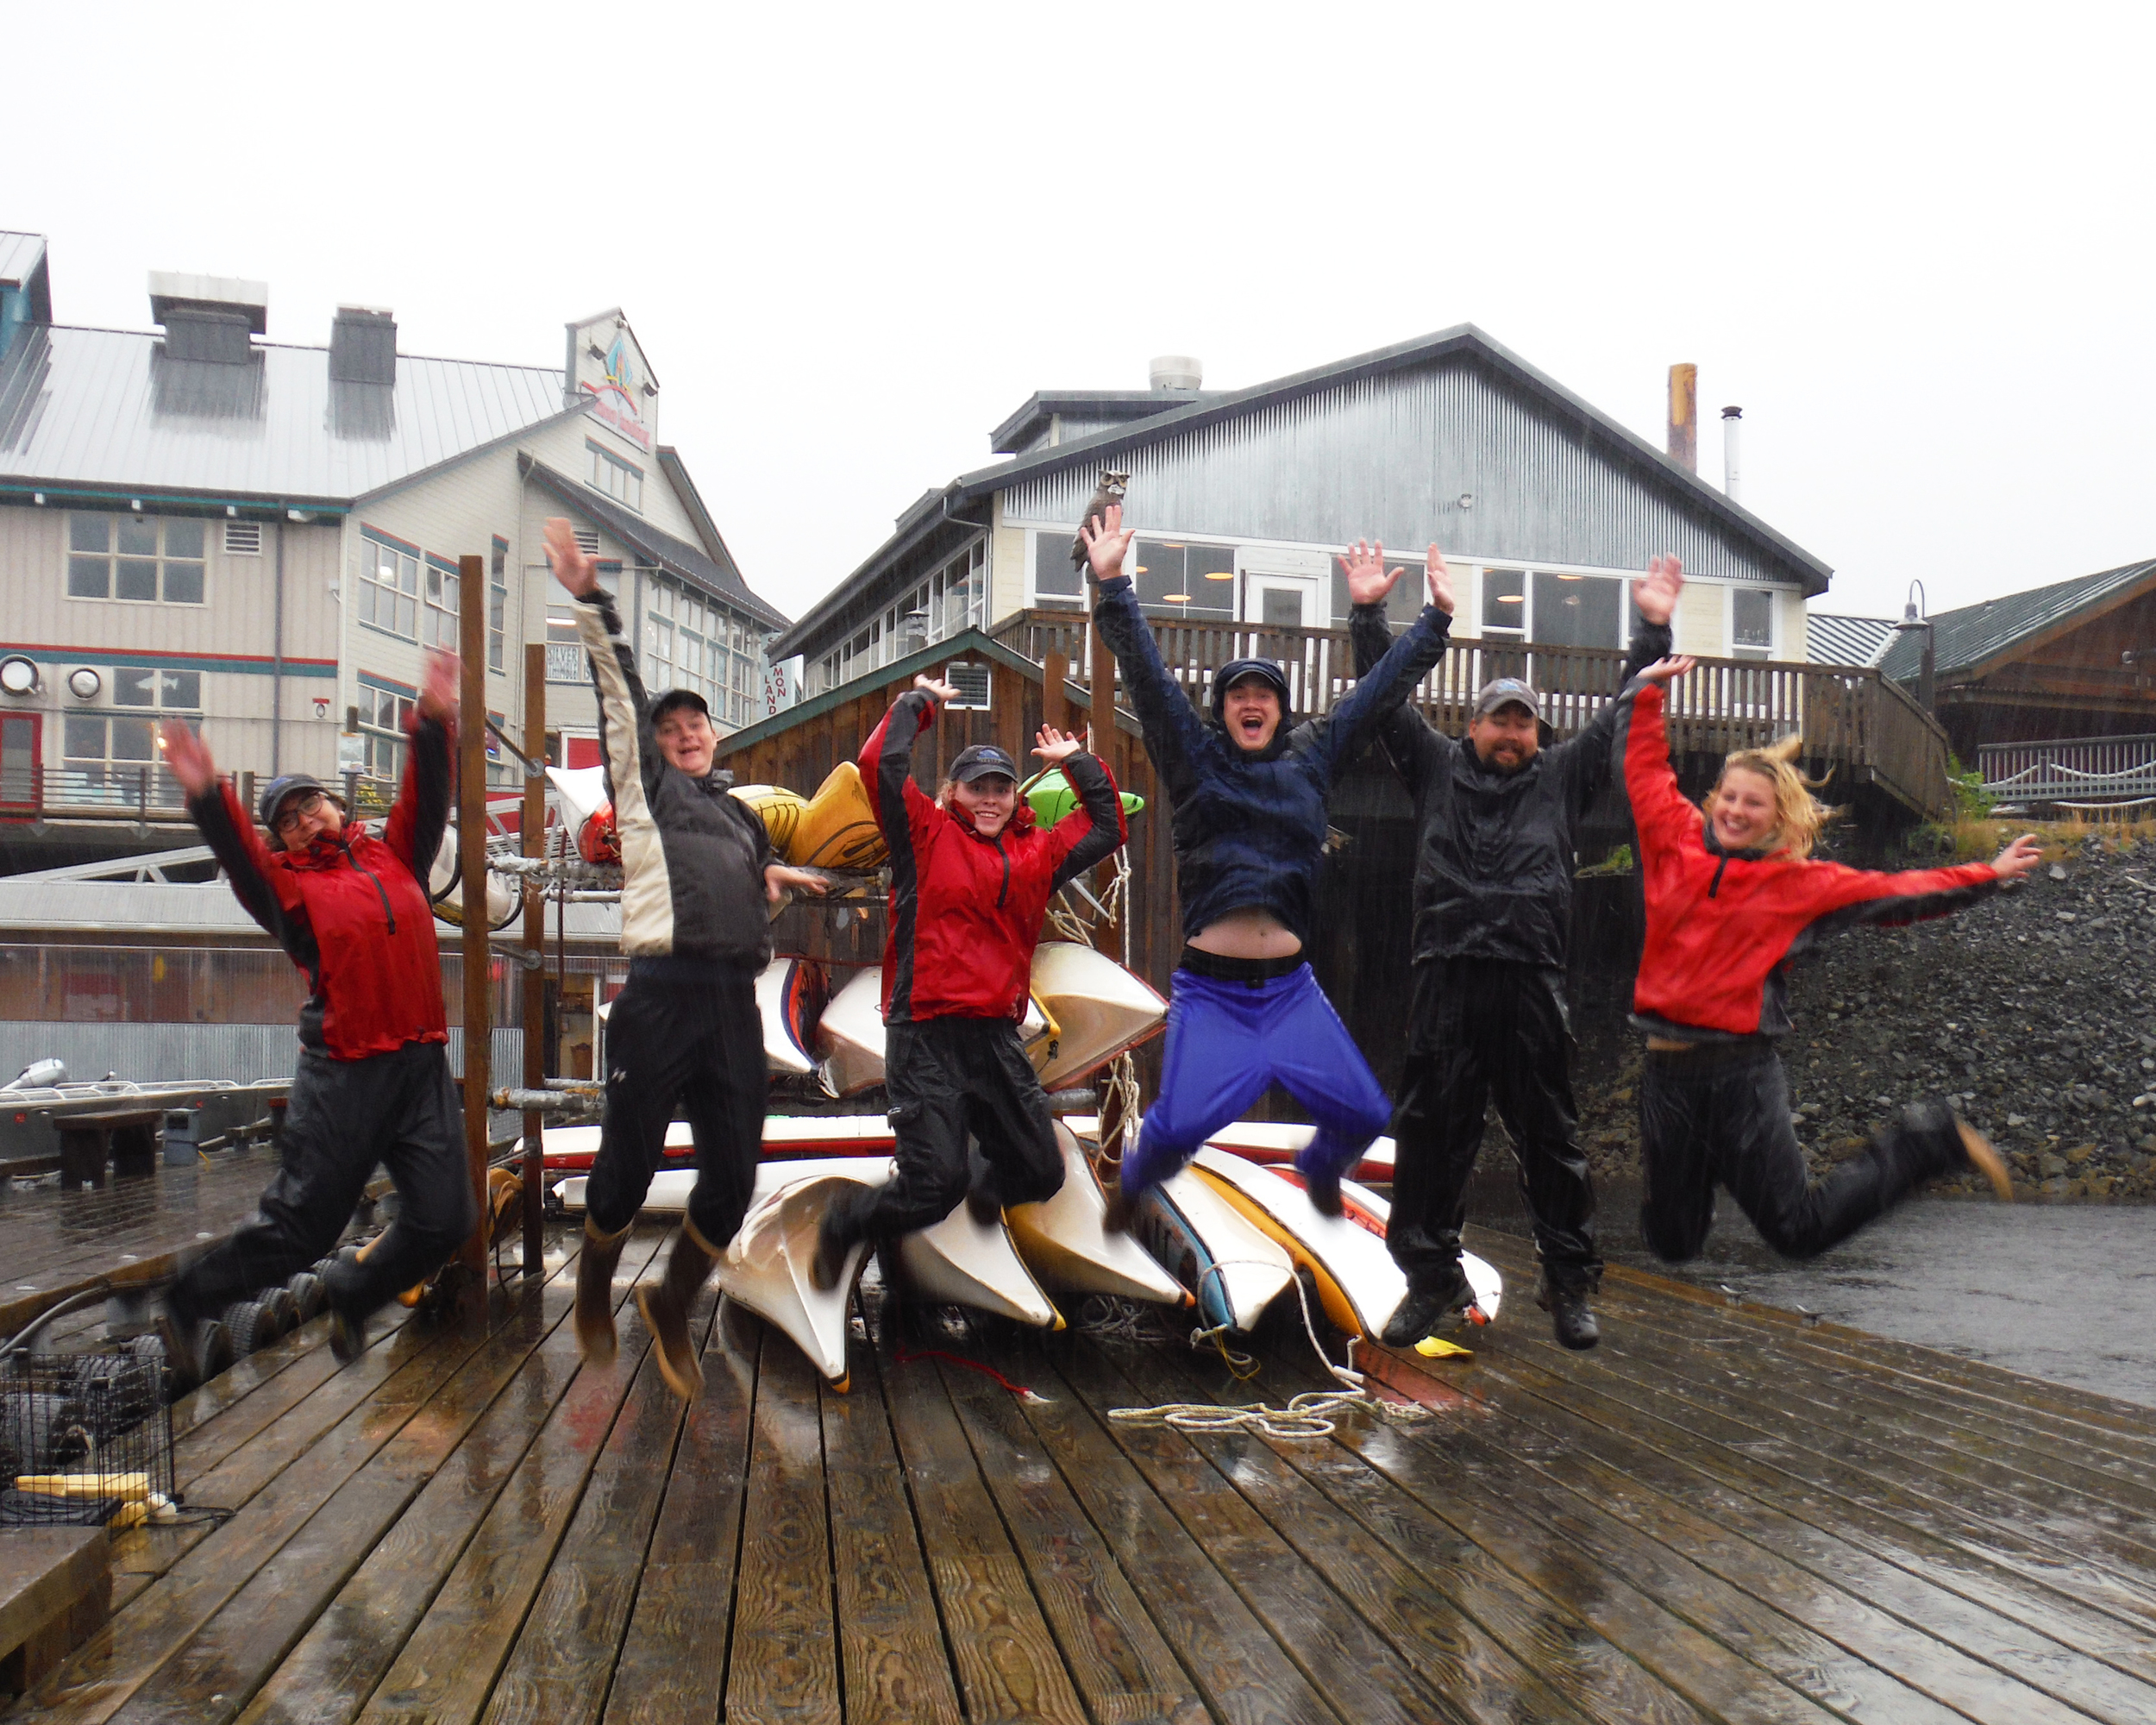 If you don't enjoy rain Ketchikan may not be the place for you.